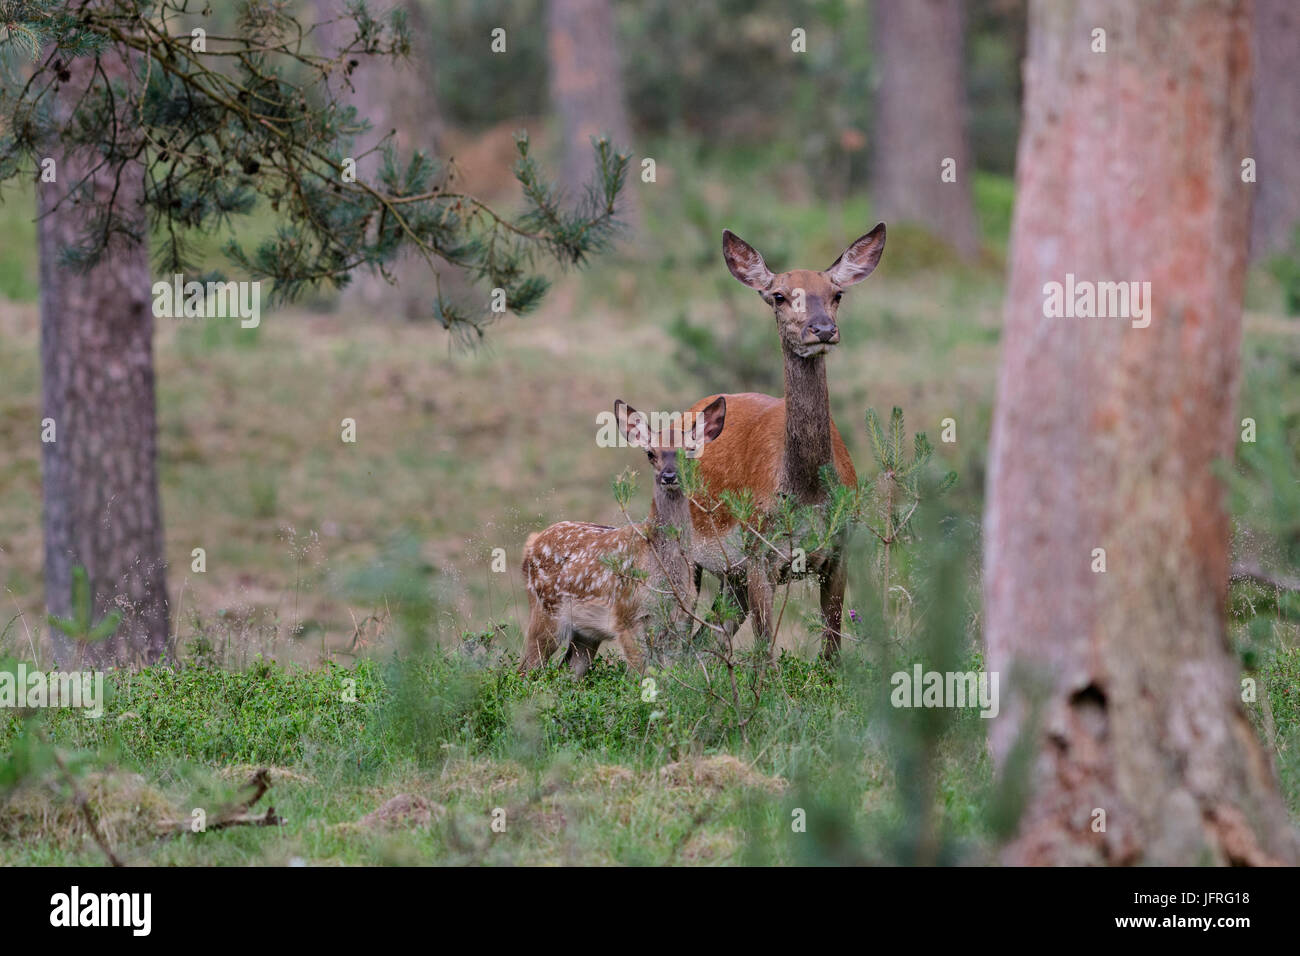 Red deer female mother with calf, which still has its camouflaged spotted fur. Hoge Veluwe National Park, Netherlands - Stock Image